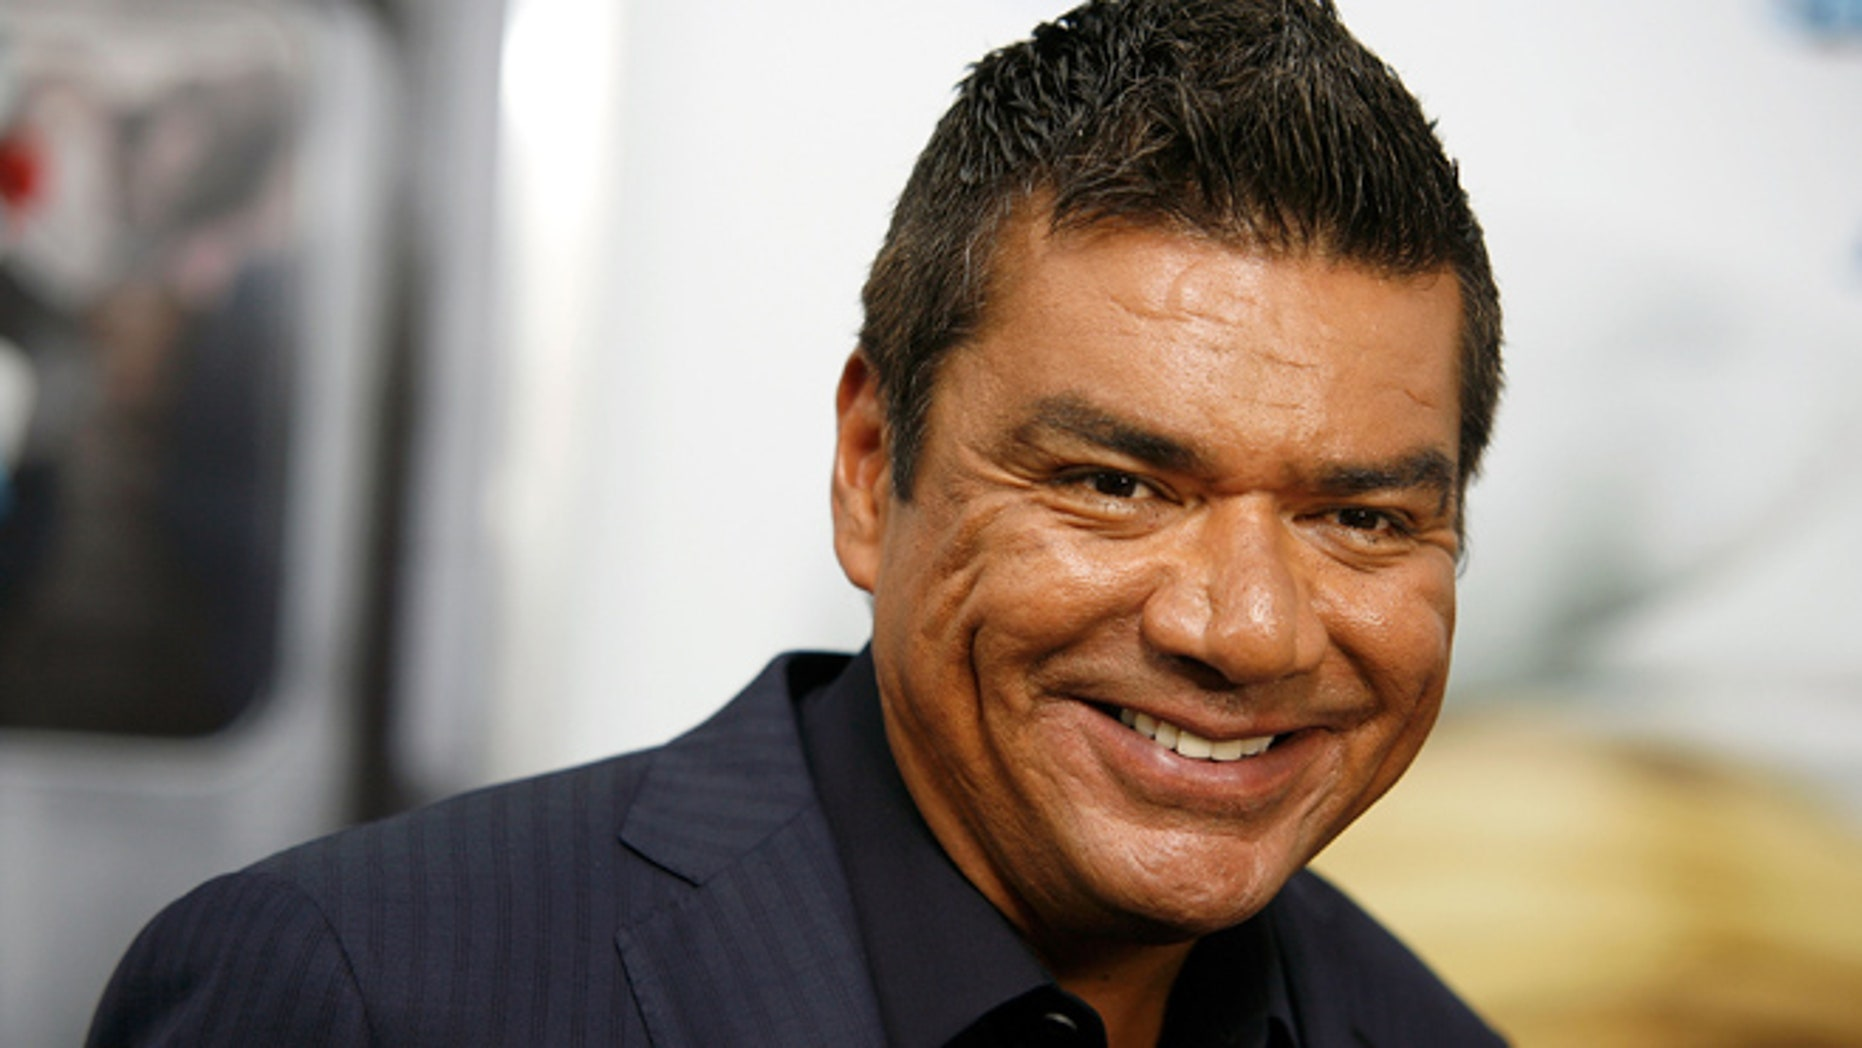 """NEW YORK, NY - JULY 24:  George Lopez attends the premiere of """"The Smurfs"""" at the Ziegfeld Theater on July 24, 2011 in New York City.  (Photo by Andy Kropa/Getty Images)"""